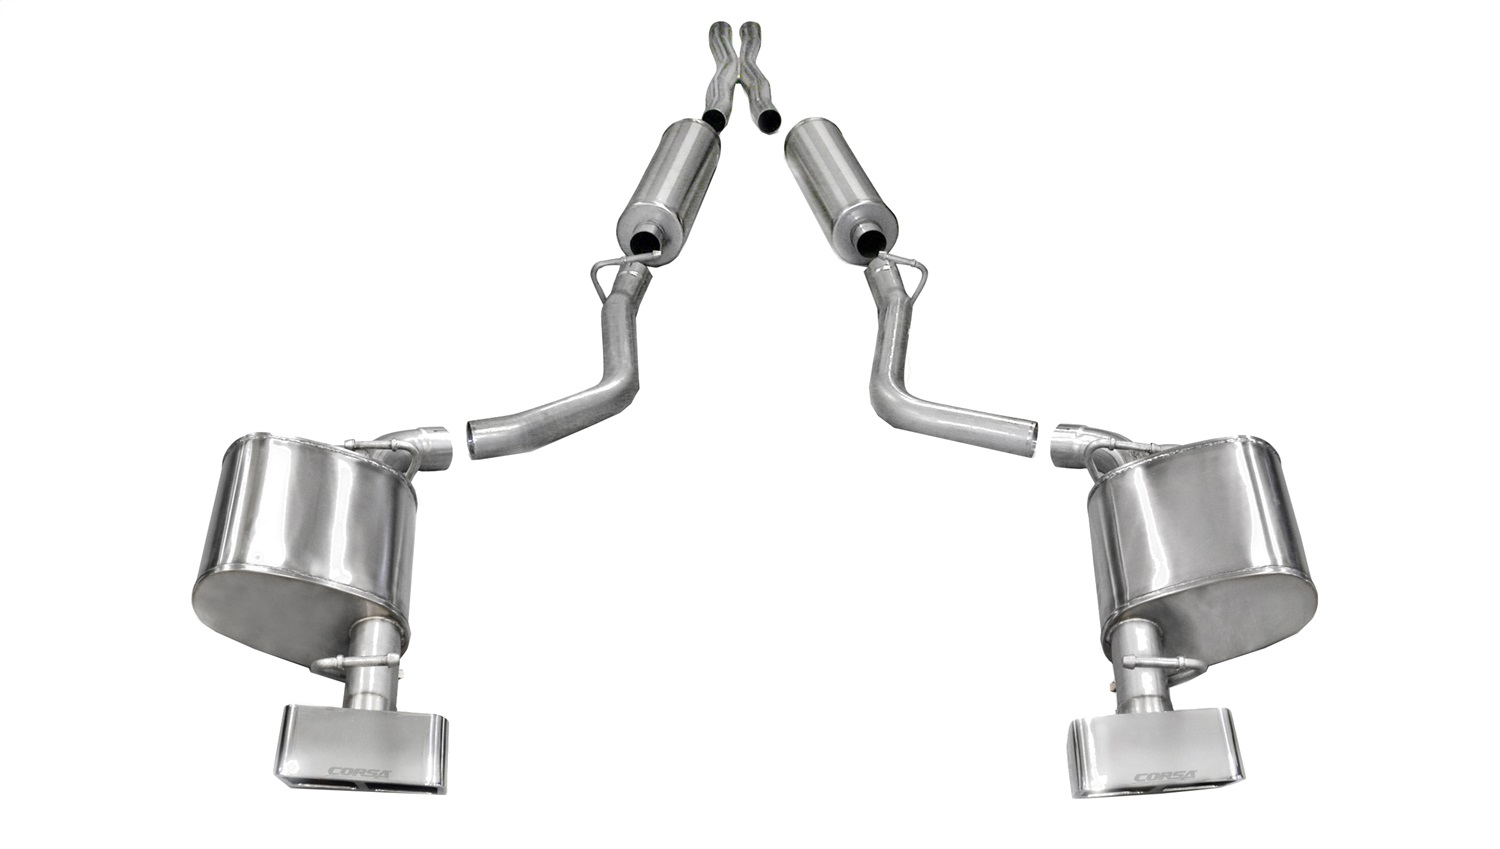 Corsa Performance 14529 Xtreme Cat-Back Exhaust System Fits 11-14 Challenger